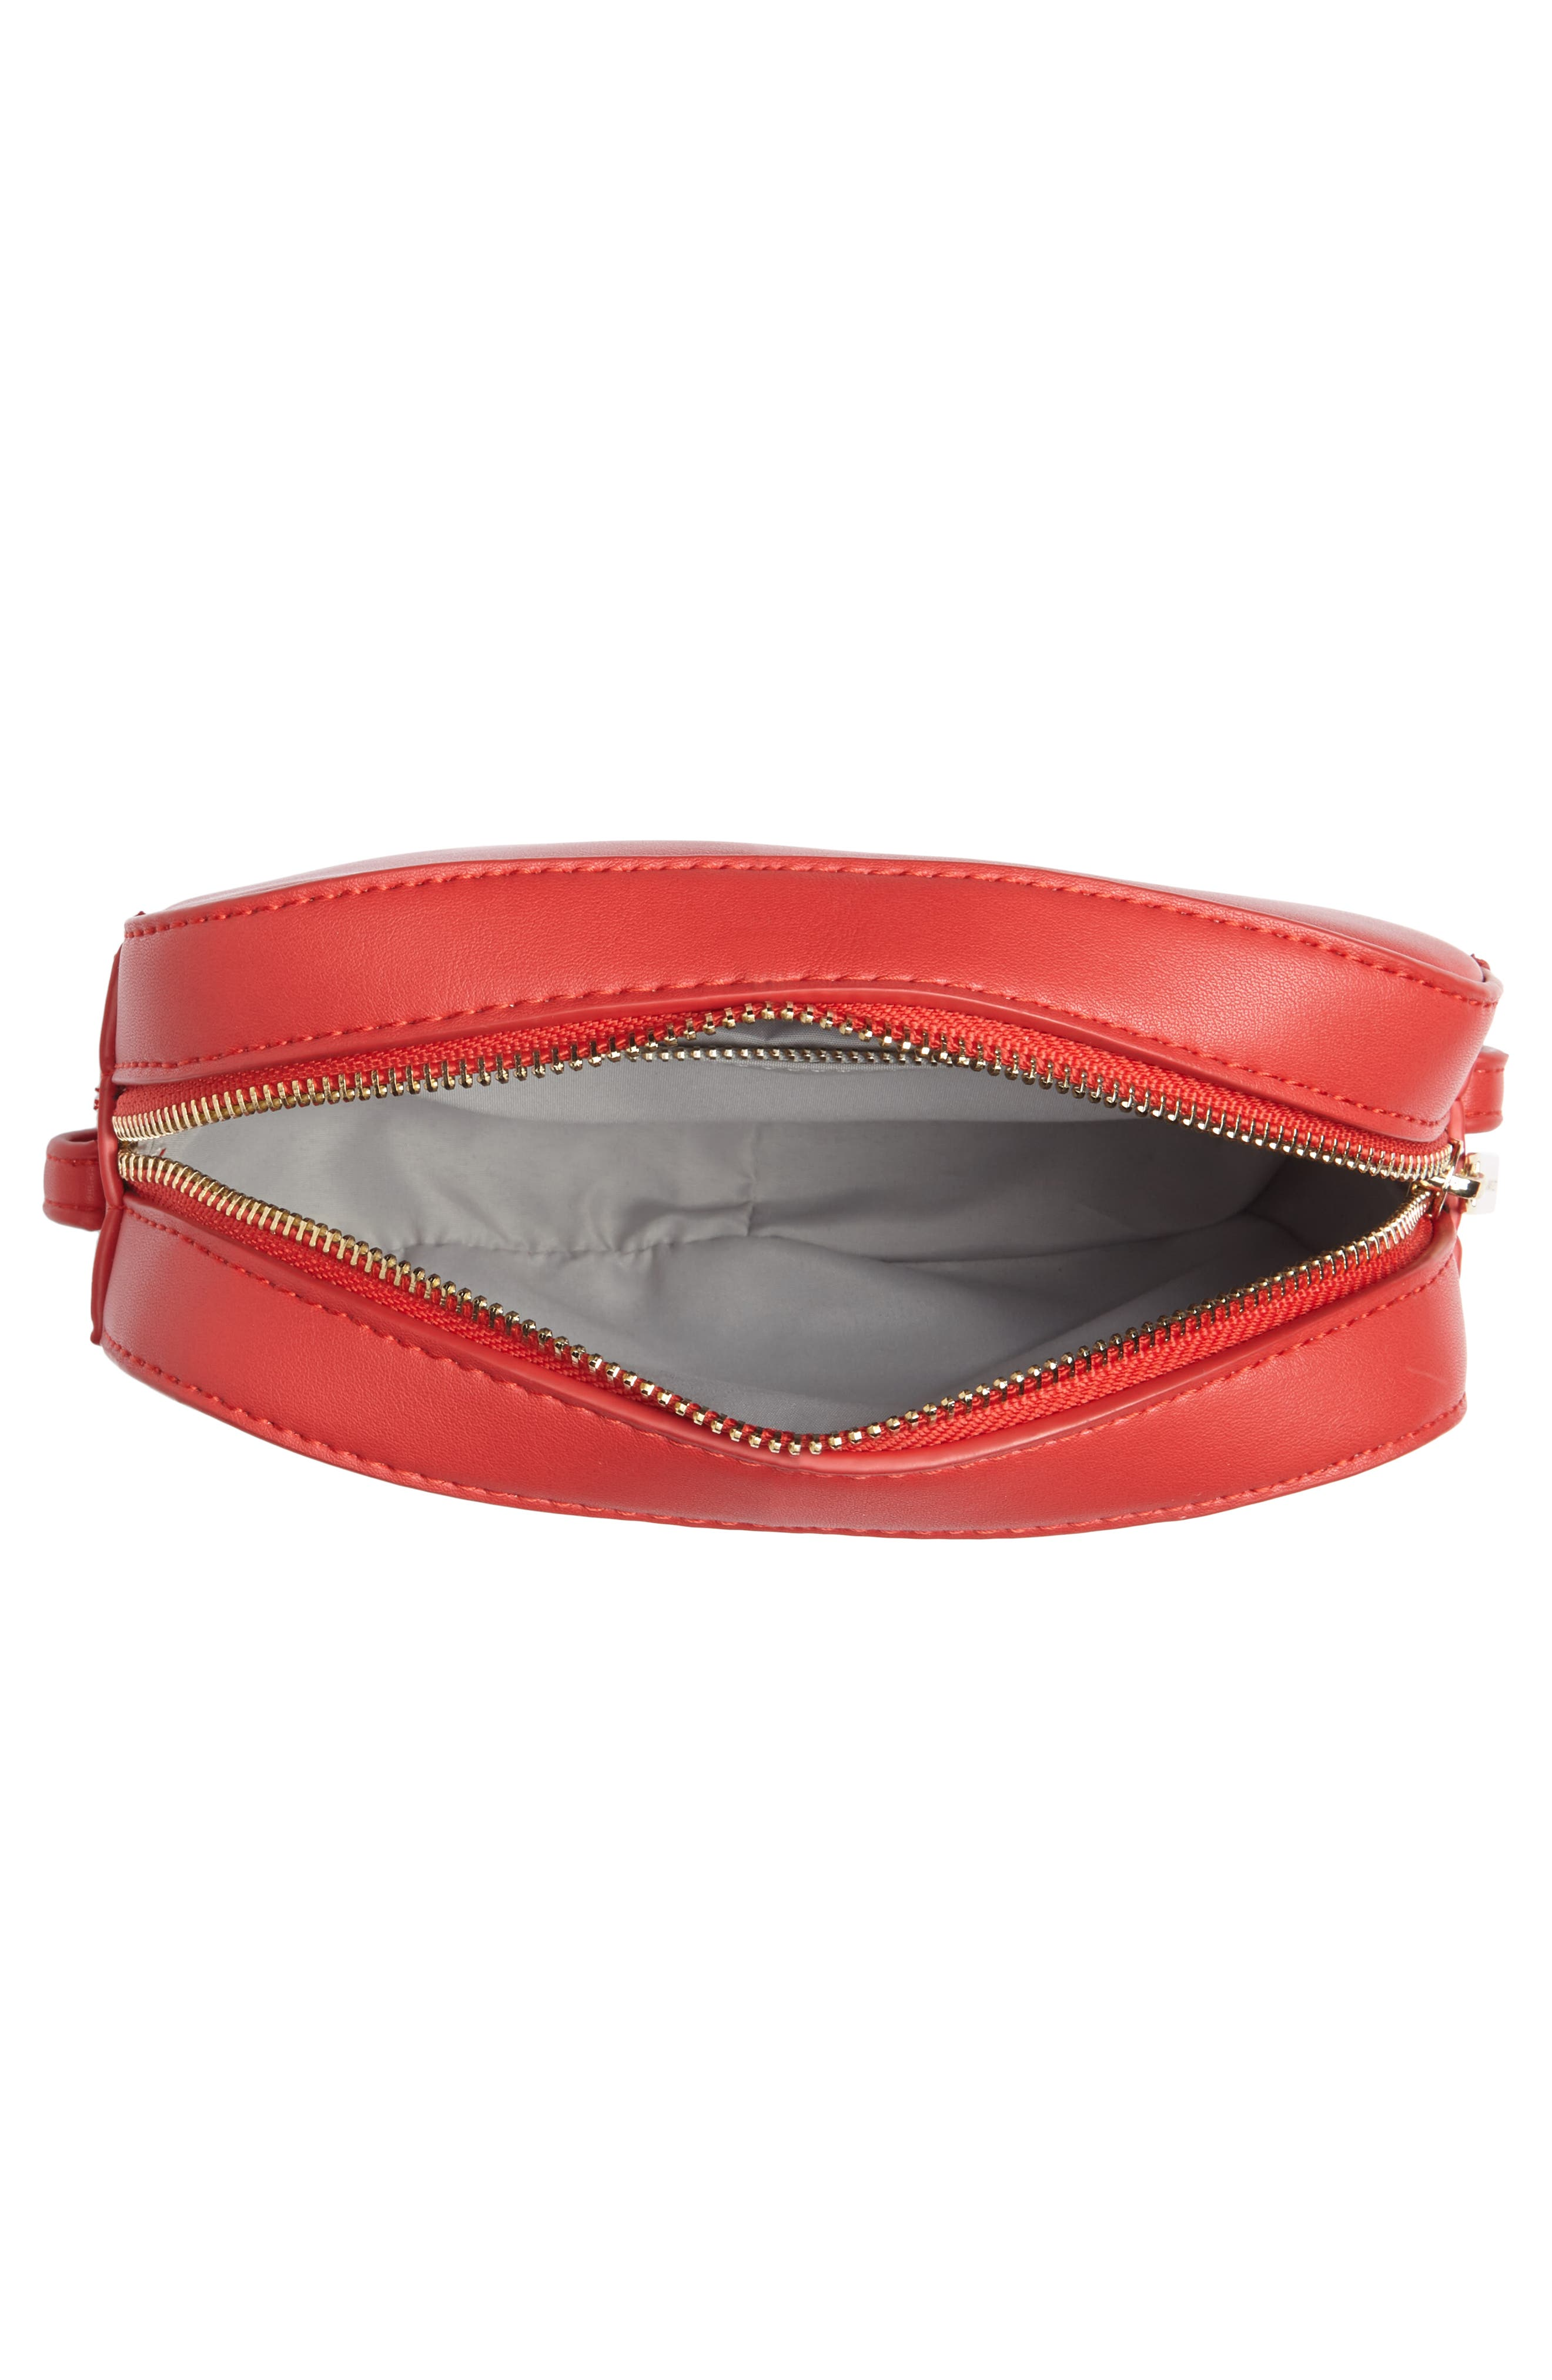 Faux Leather Box Bag,                             Alternate thumbnail 4, color,                             Red